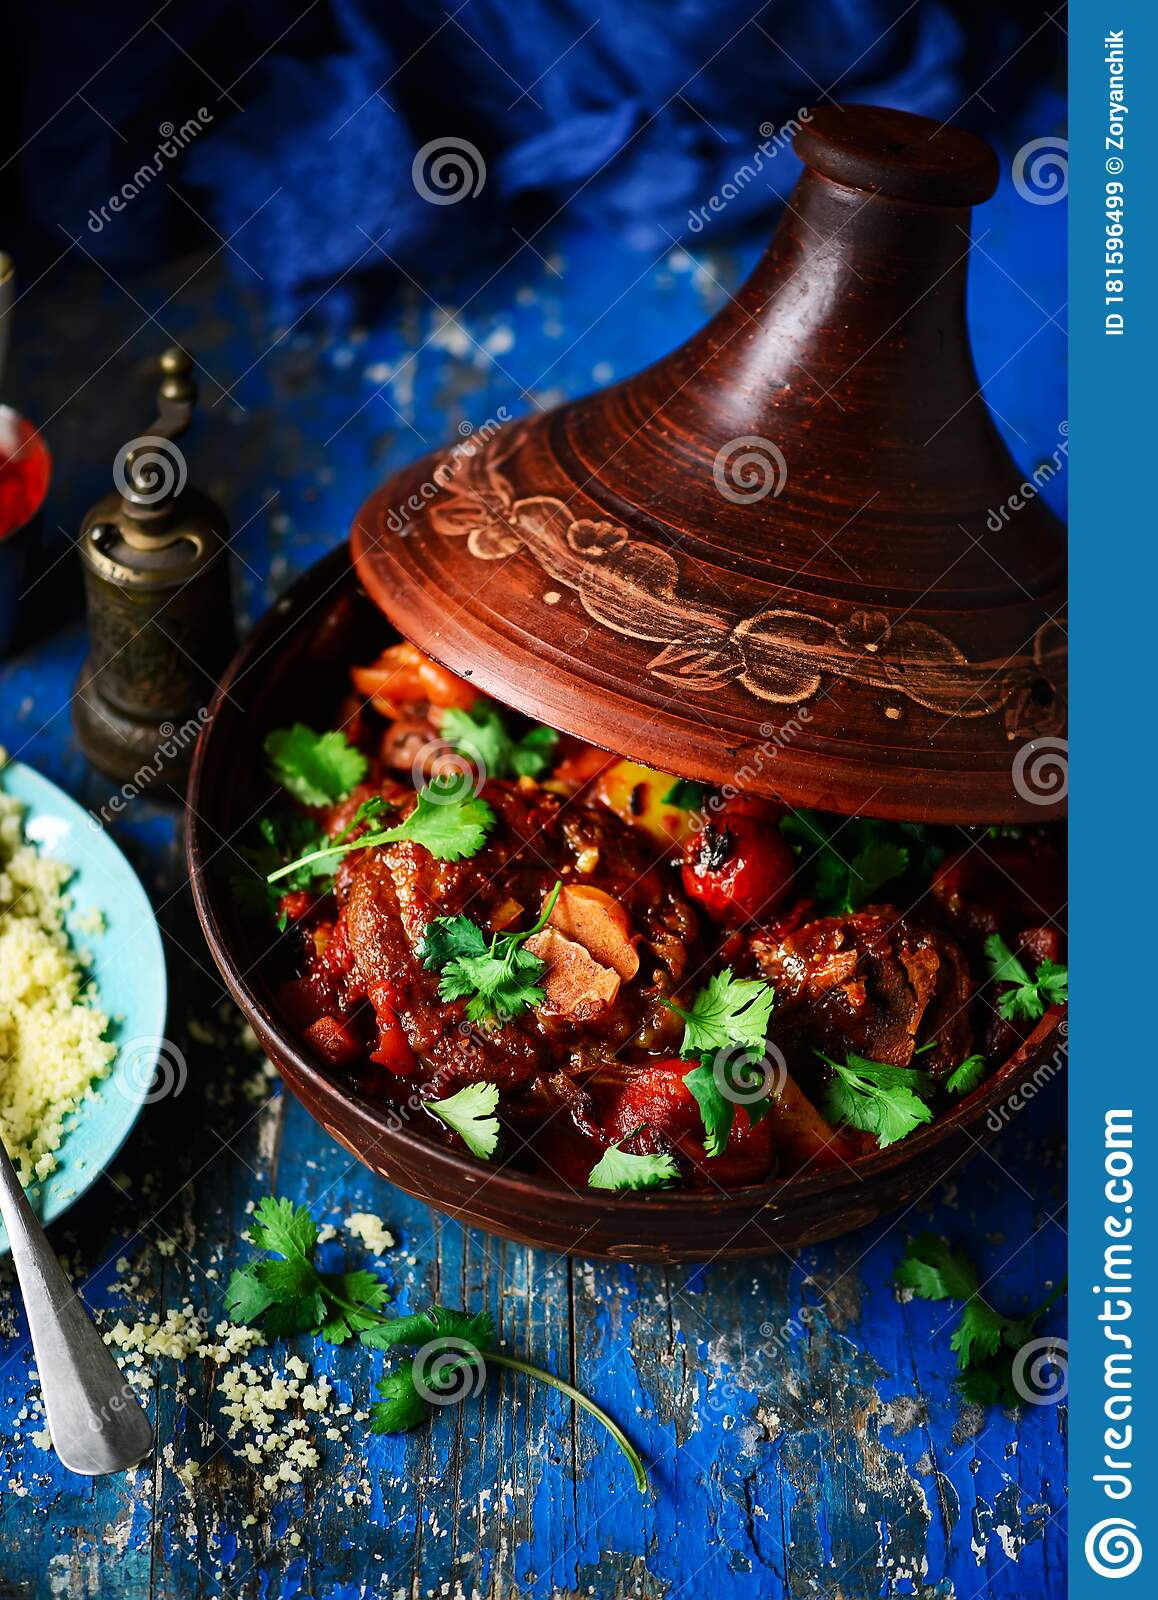 Moroccan Lamb Tagine Style Vintage Stock Image Image Of Food Cuisine 181596499